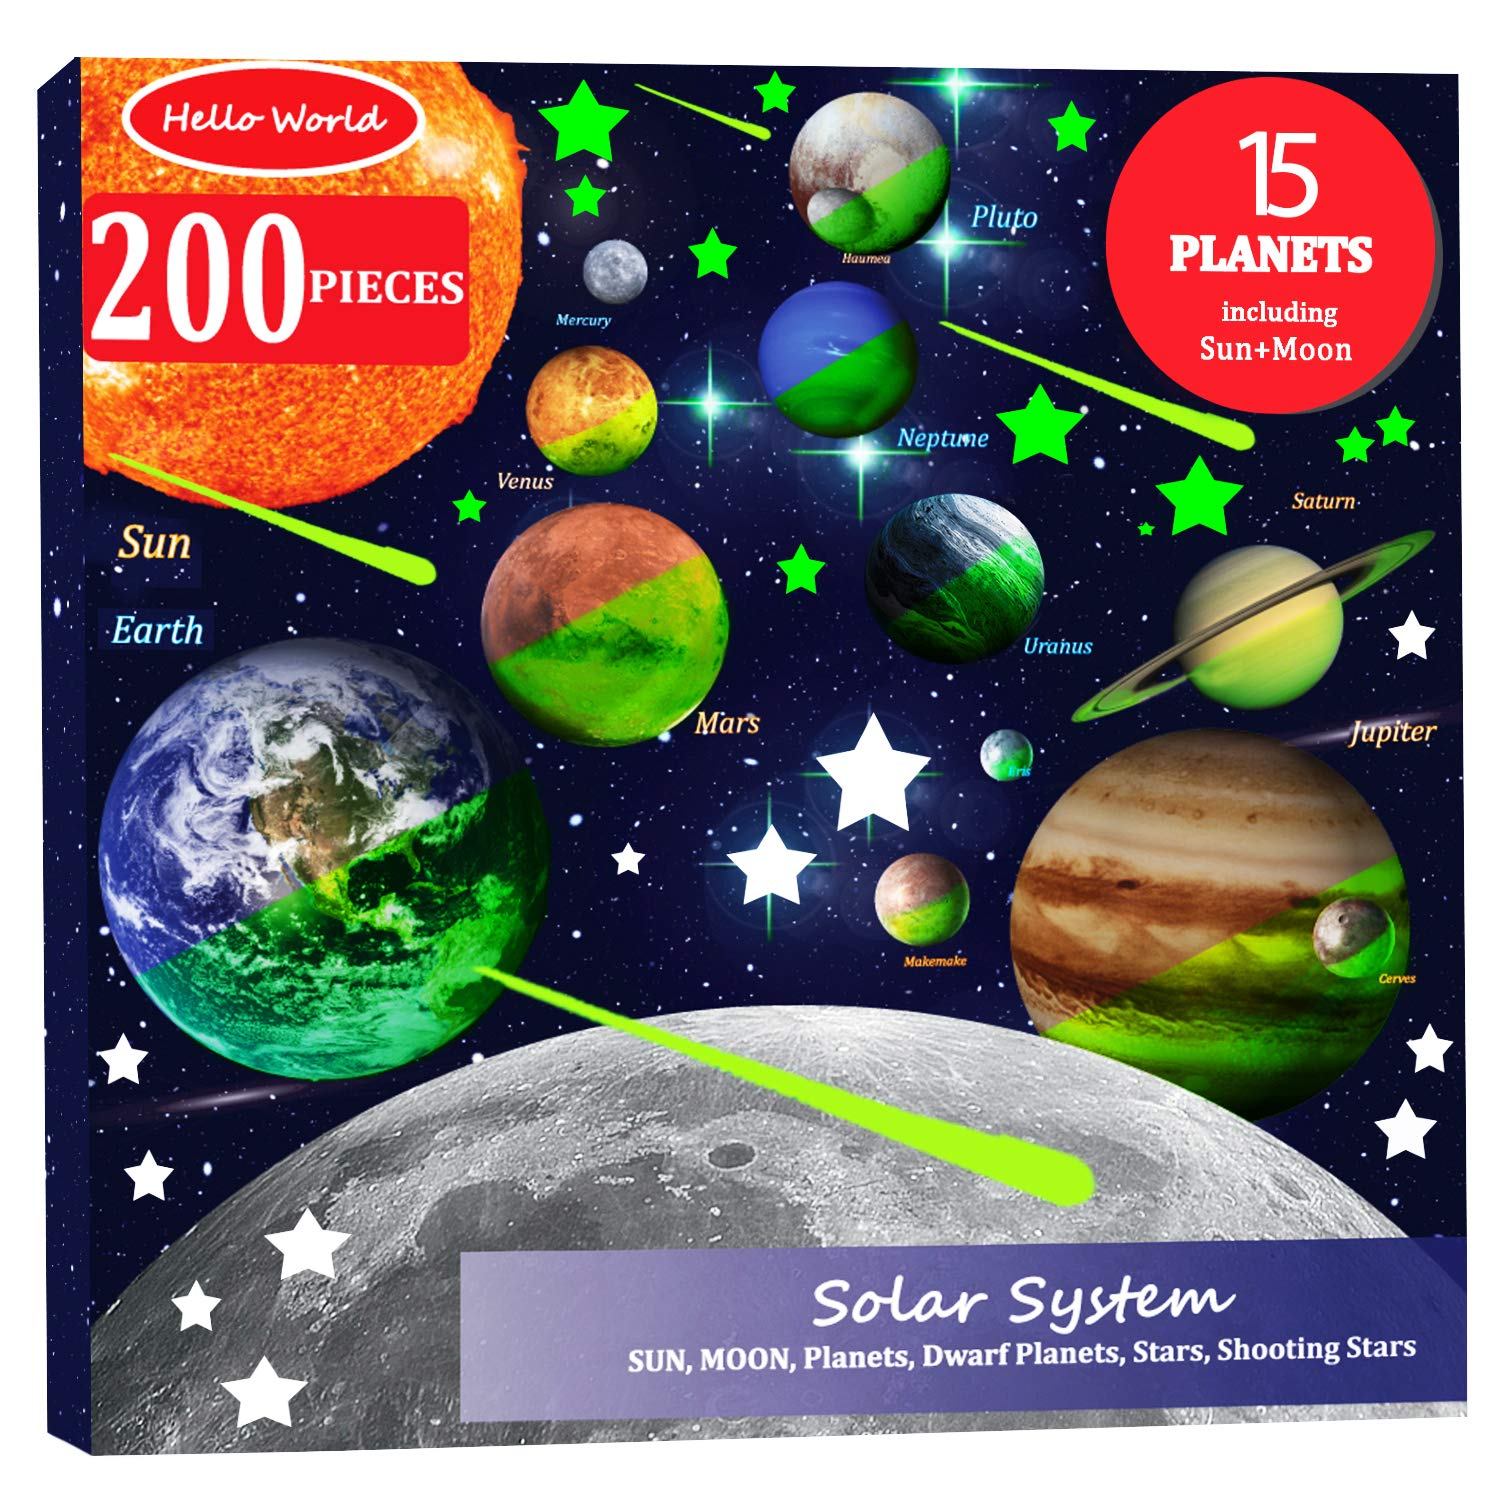 200pcs Glow in The Dark Stars and Planets Wall Stickers, Bright Solar System Wall Stickers, All Glowing Planets Dwarf Pluto Moon Sun 173 stars, 12 shooting stars, Ceiling Wall Decals Kids Bedroom